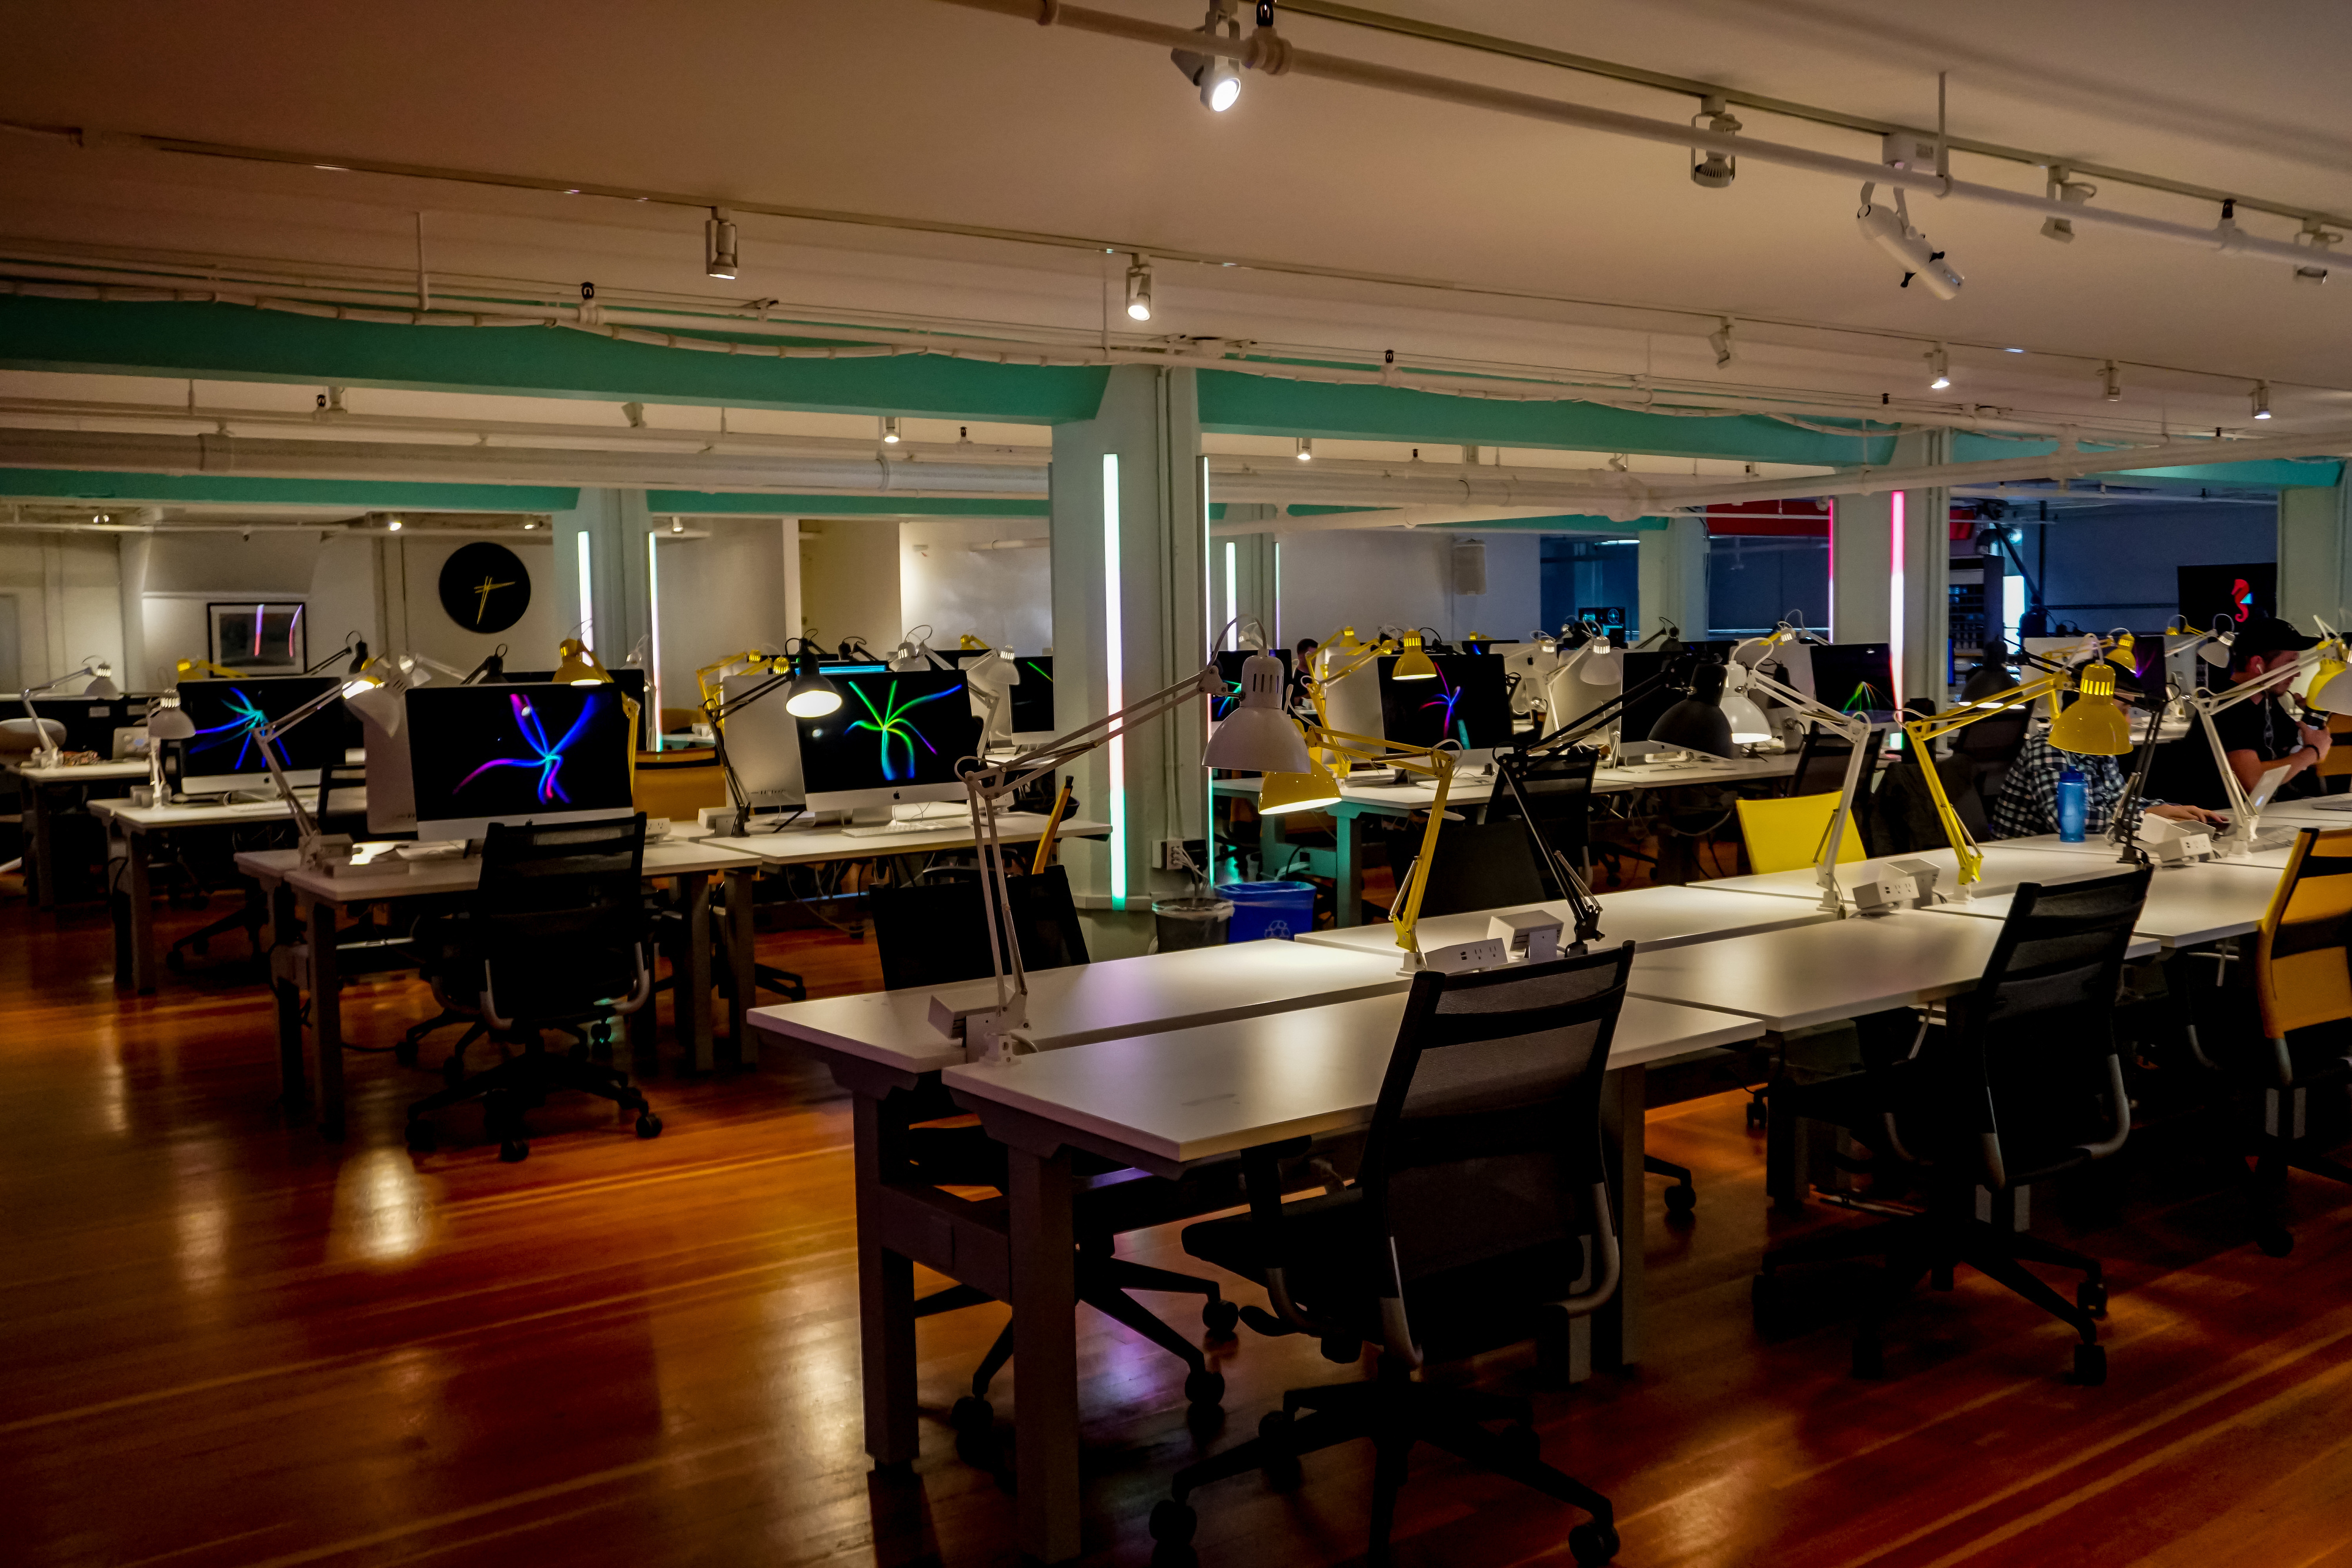 Picture of Holberton computer lab, also known as the matrix